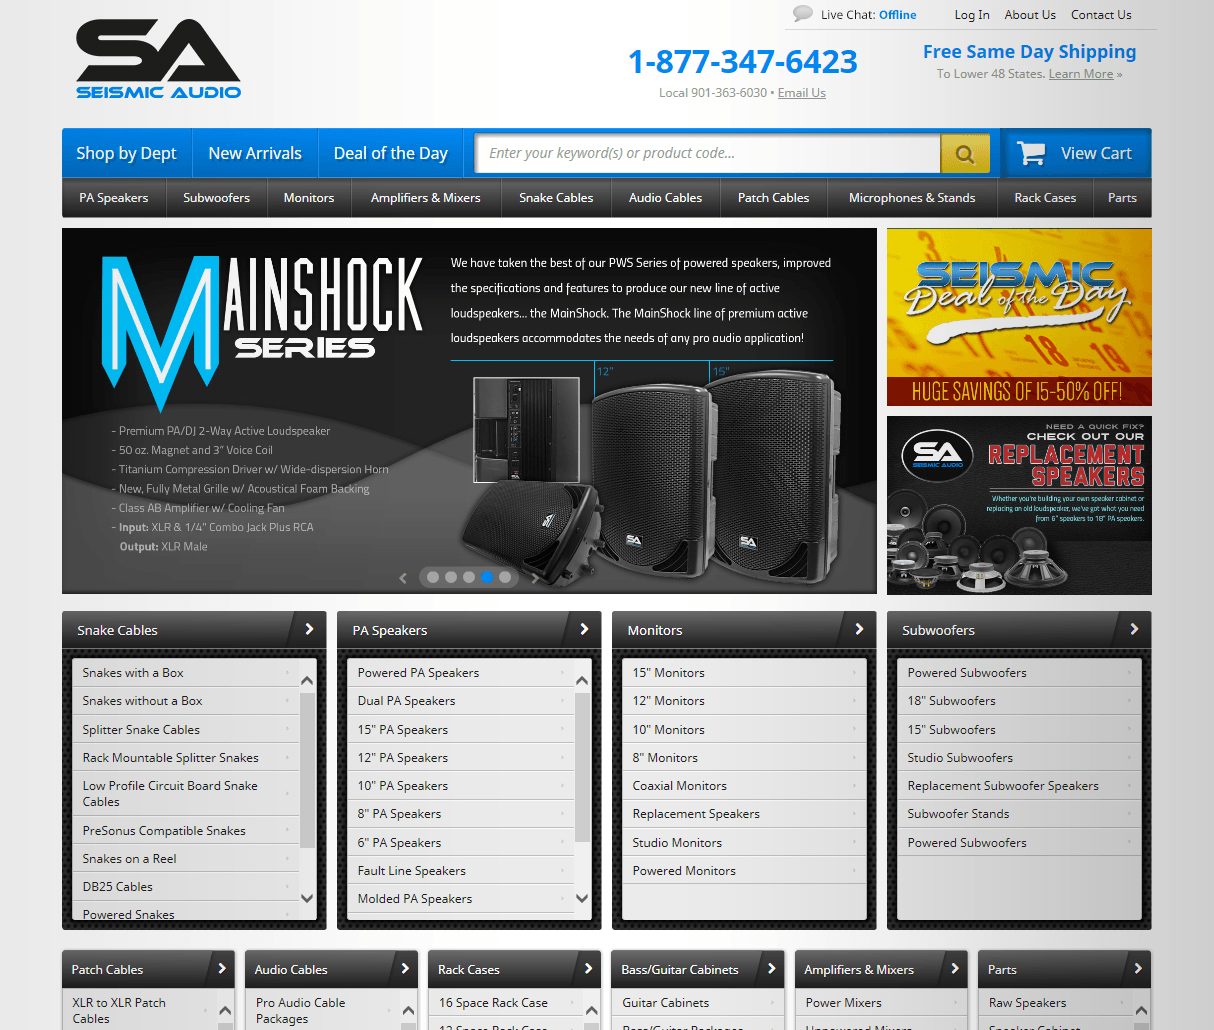 Seismic Audio Website Screenshot